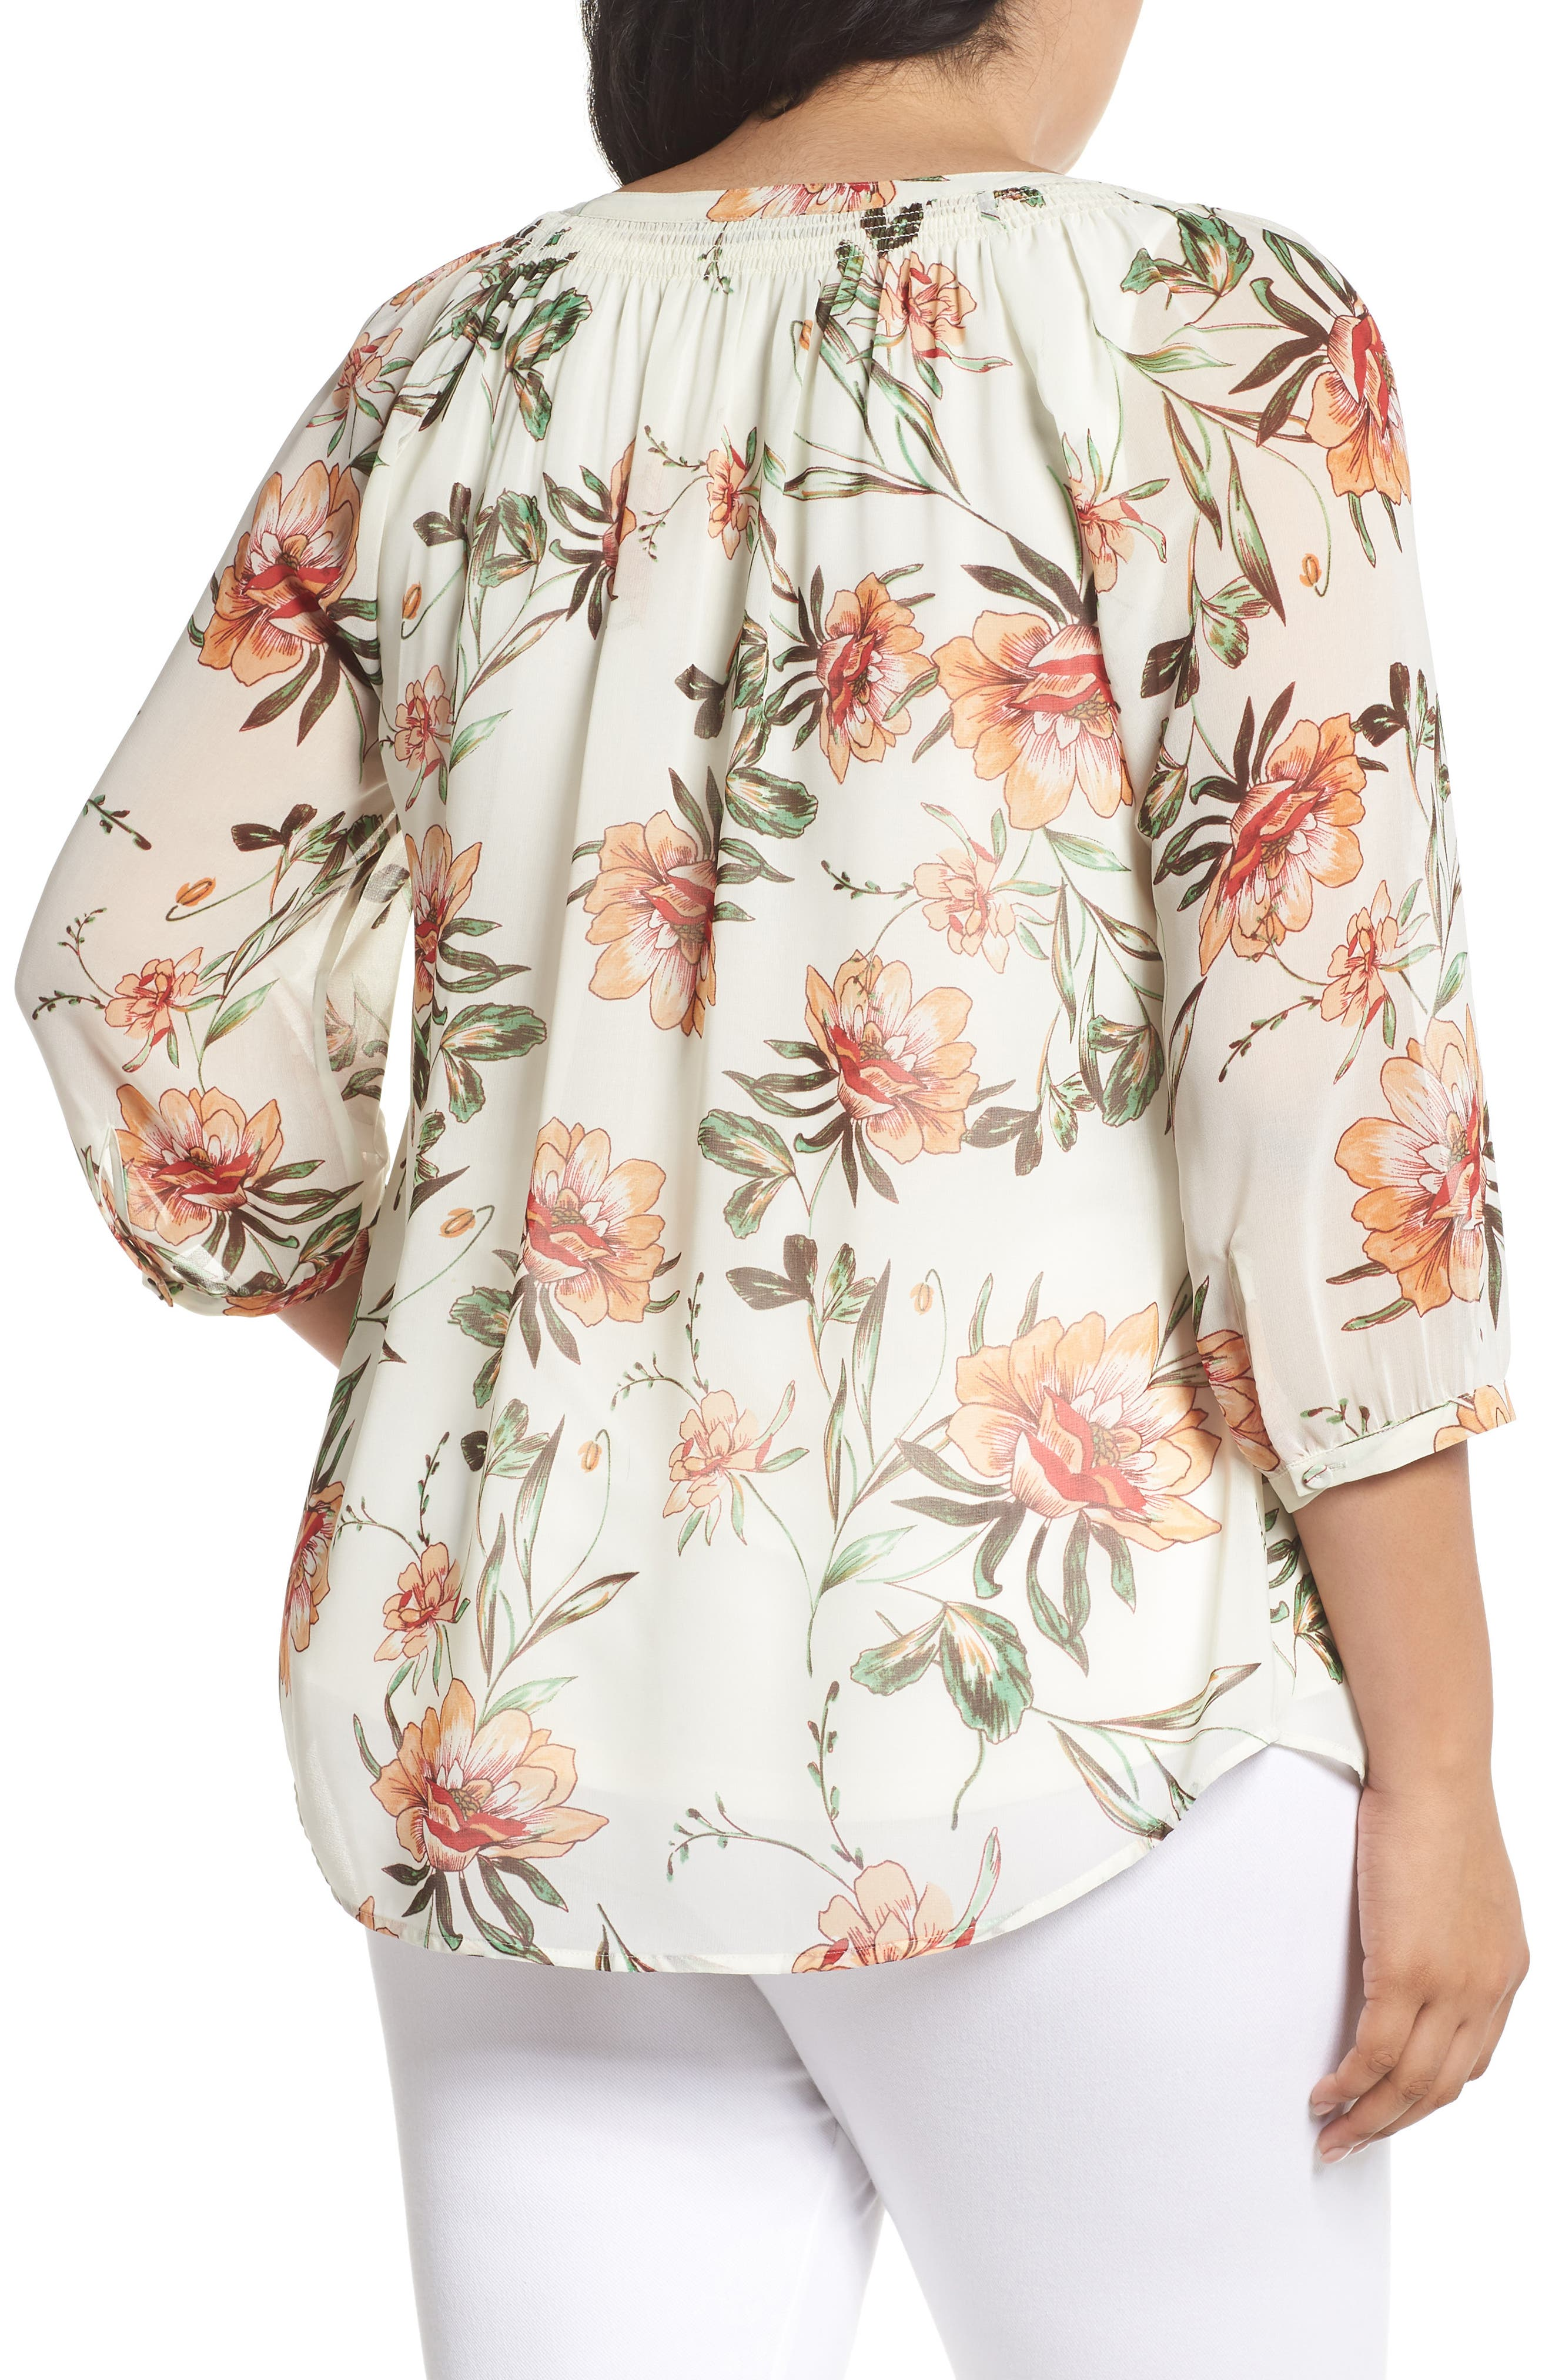 Paisley Blouse,                             Alternate thumbnail 2, color,                             D380n Ivory